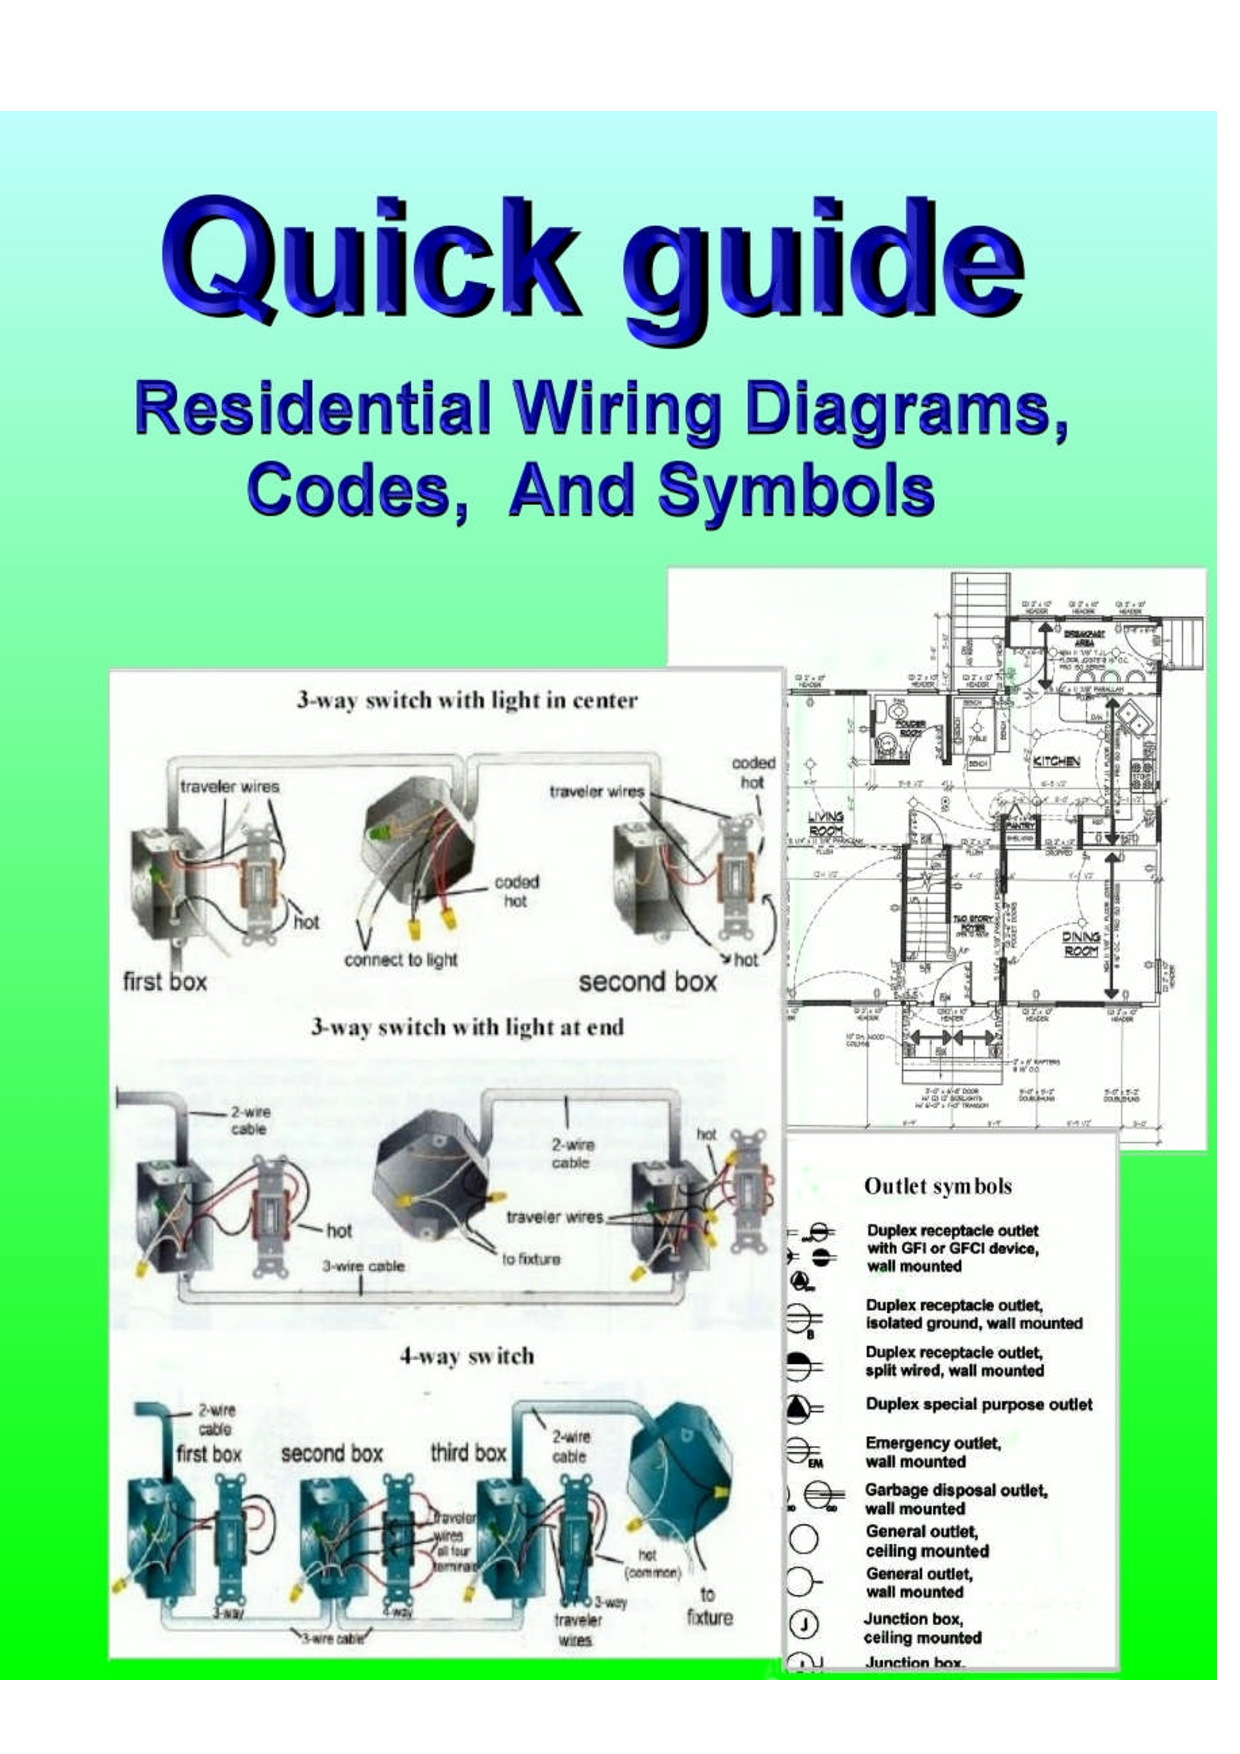 medium resolution of home electrical wiring diagrams pdf download legal documents 39 wiring diagram for house as well as home electrical outlet wiring